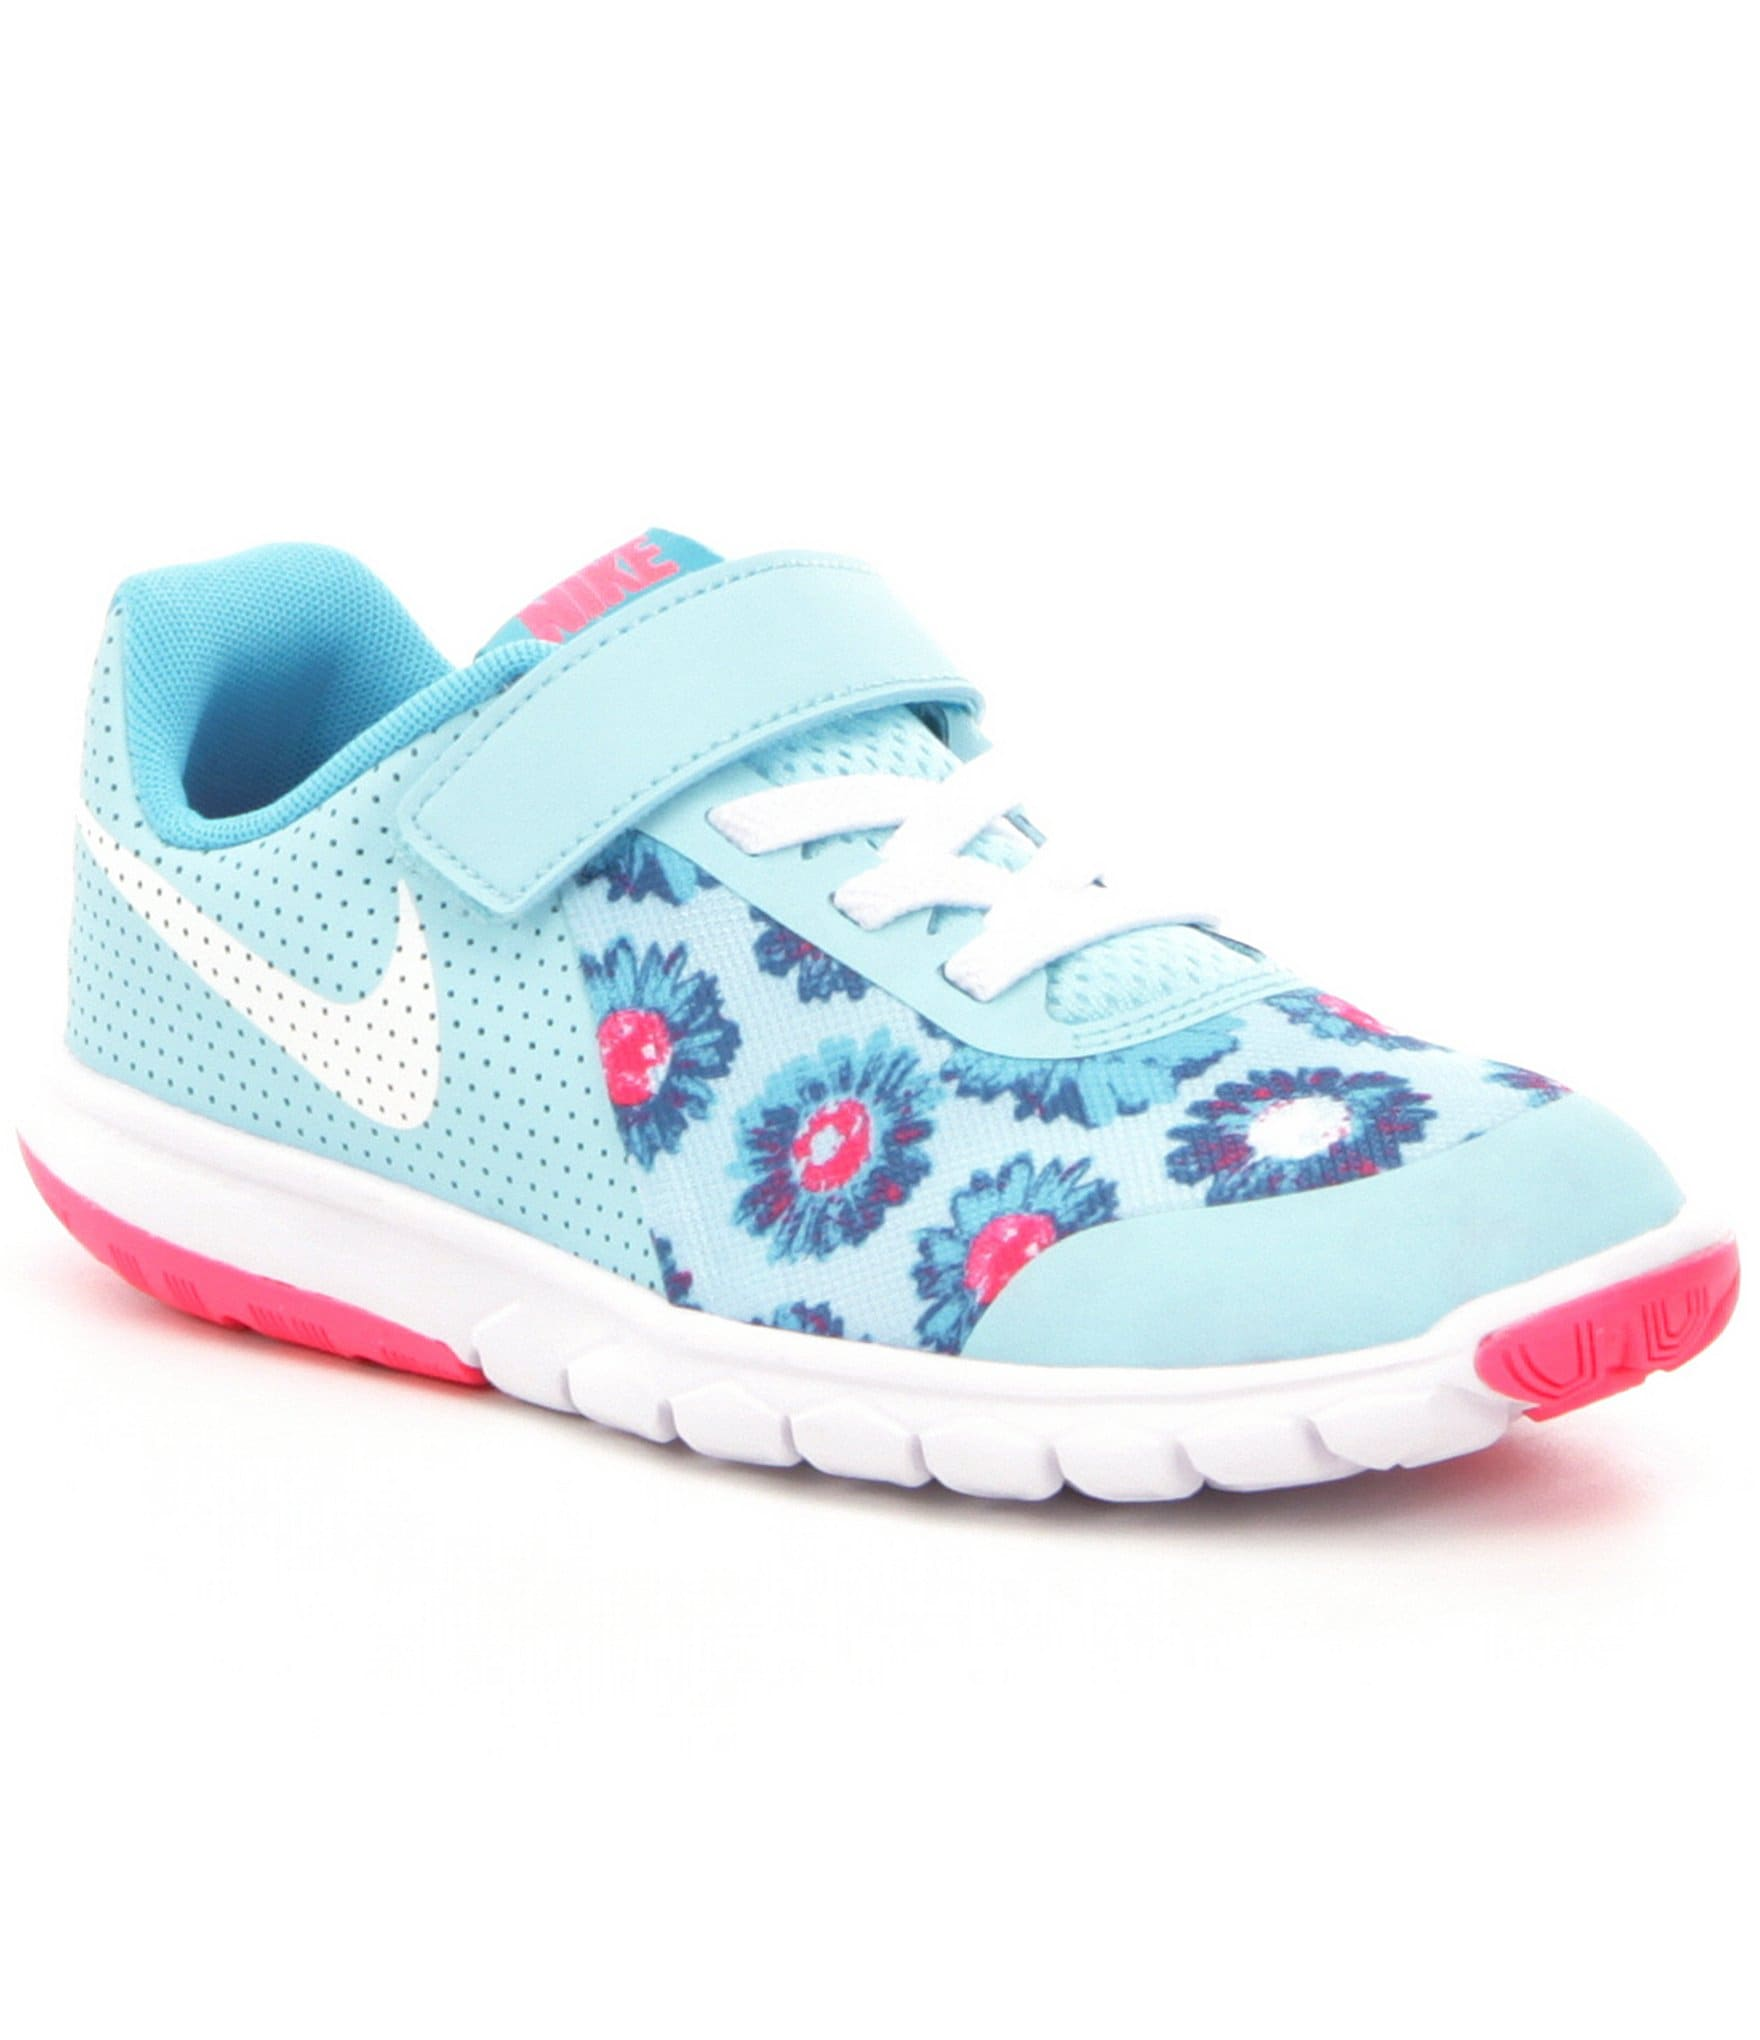 Nike Girls Flex Experience Running Shoe